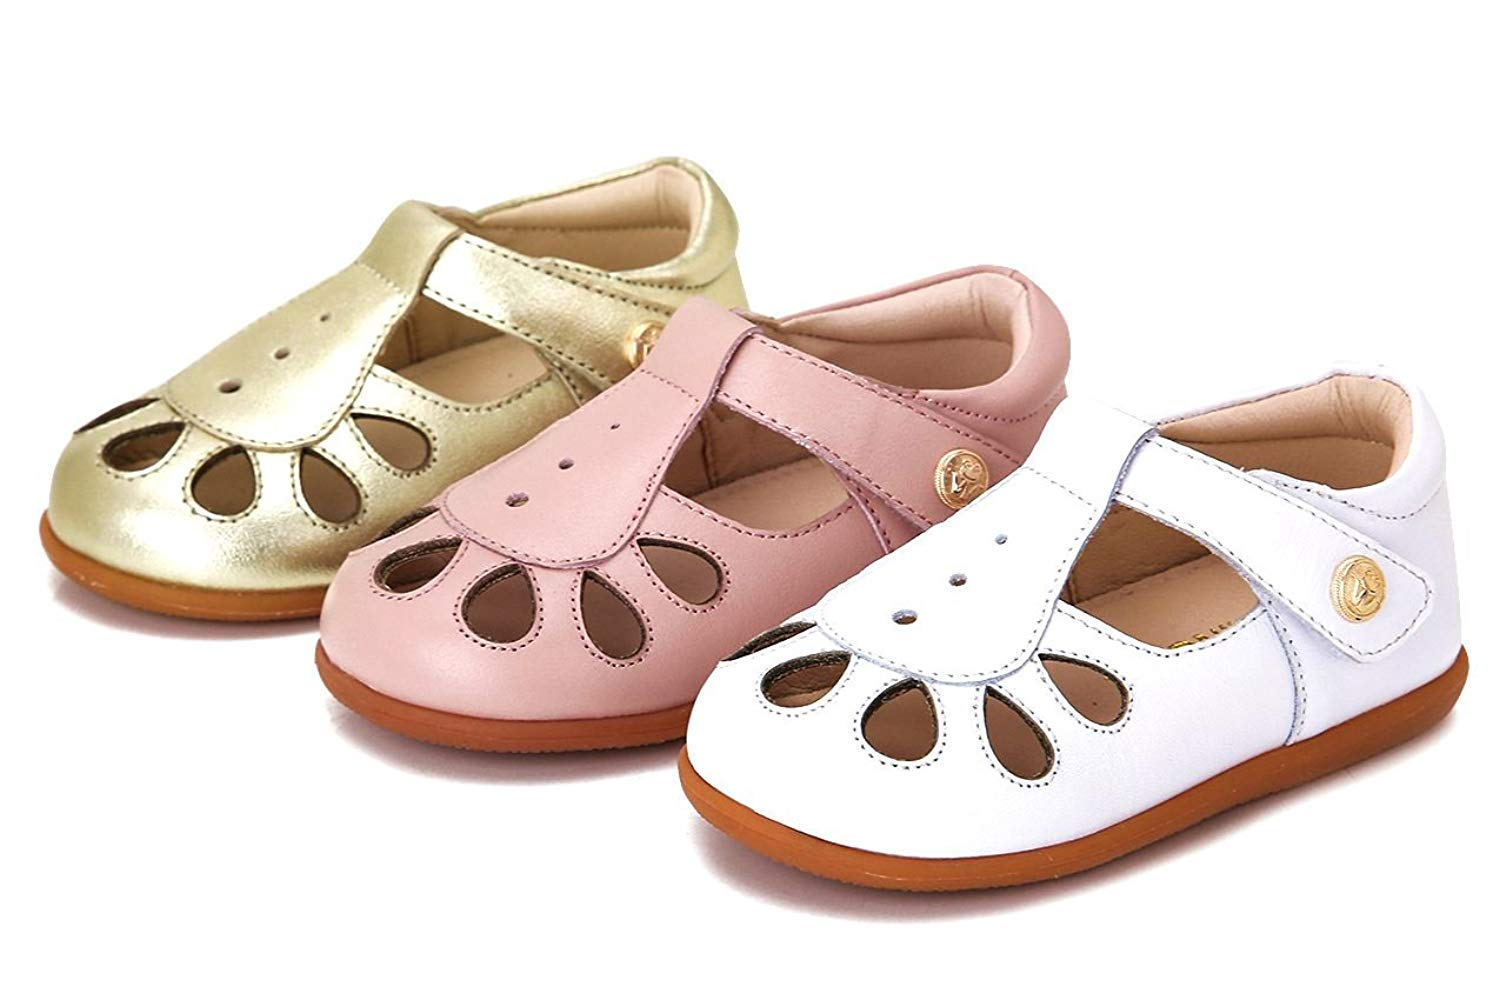 feac58947890 Toddler Baby Girl Shoes kids sandals Mary Jane flats dress Genuine Leather  velcro walking shoes USA